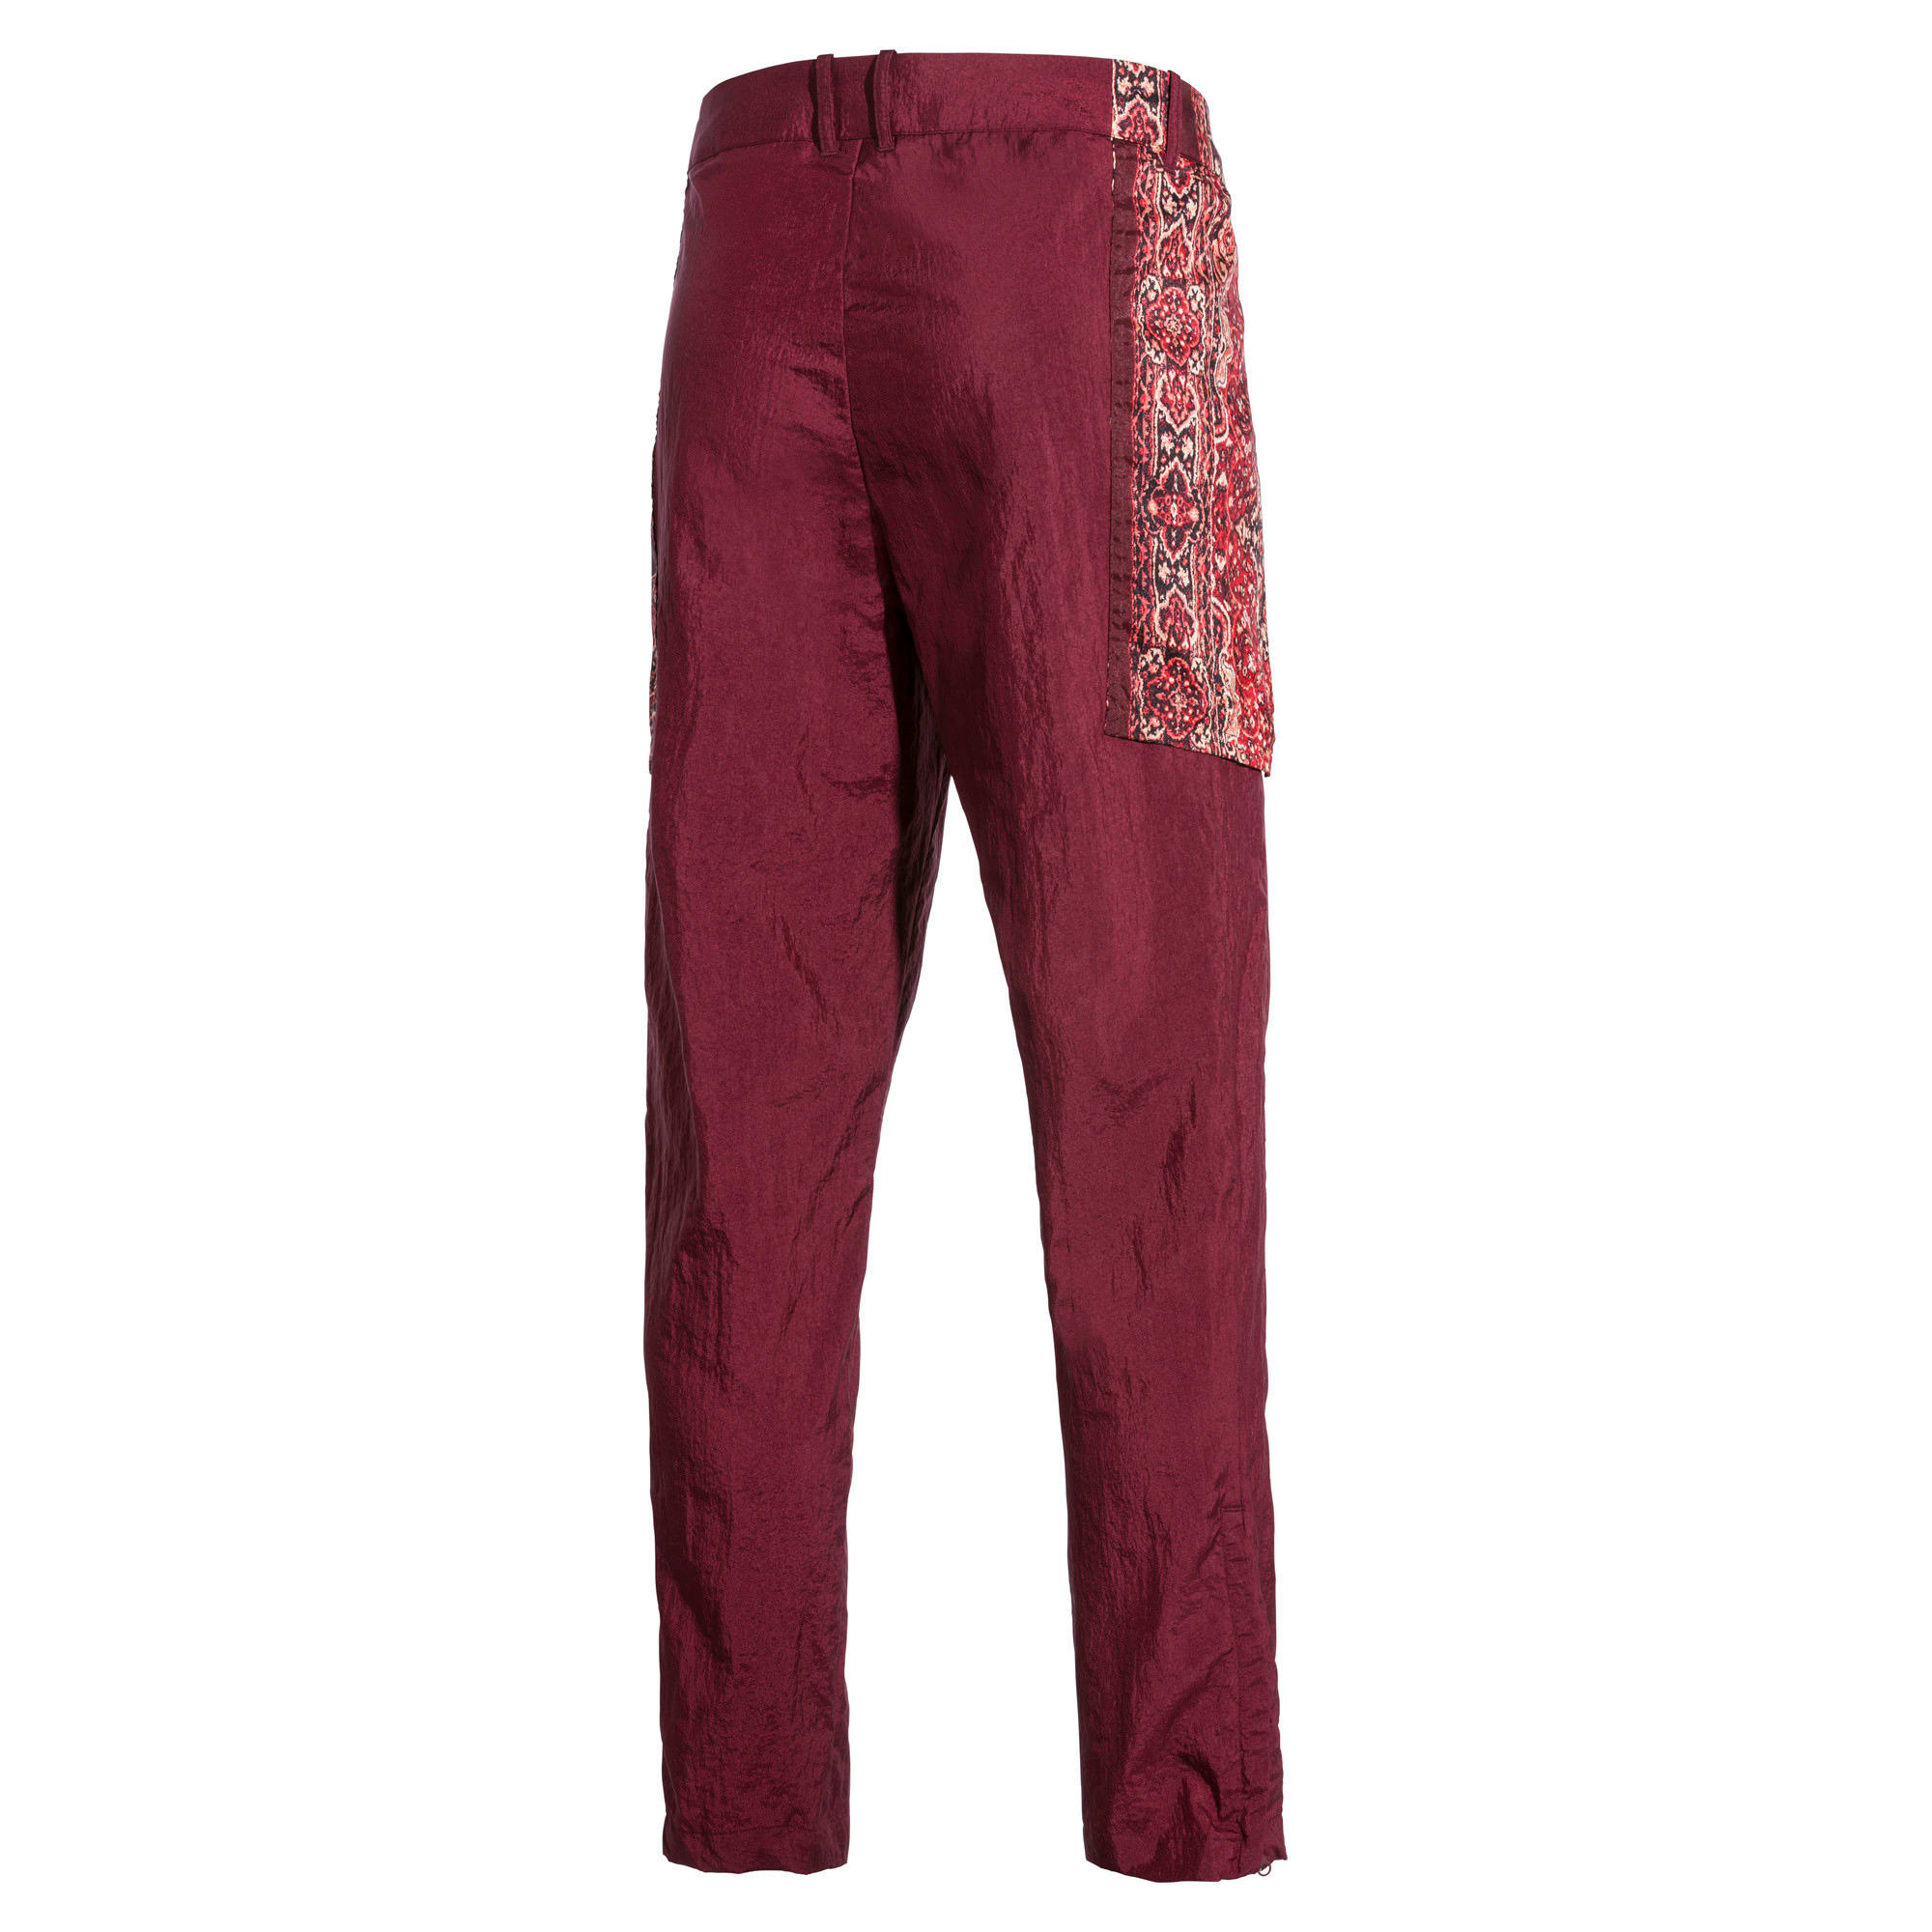 Thumbnail 6 of PUMA x LES BENJAMINS trainingsbroek voor heren, Burgundy, medium